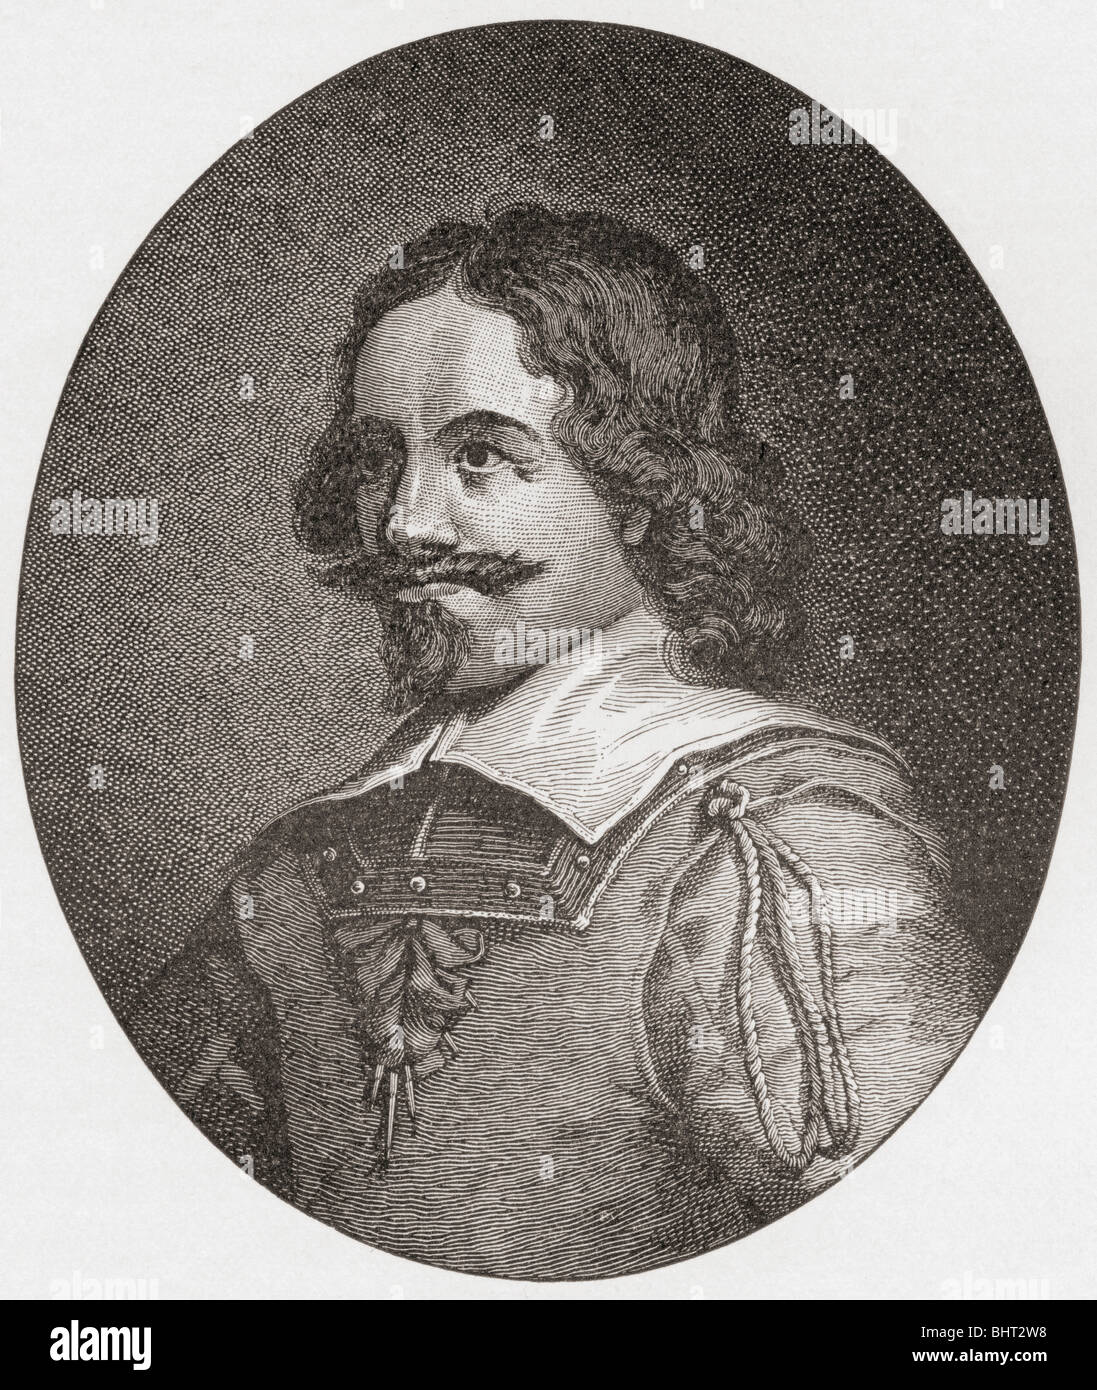 Alexander Leslie, 1st Earl of Leven, 1582 to 1661. Scottish soldier in Dutch, Swedish and Scottish service. - Stock Image